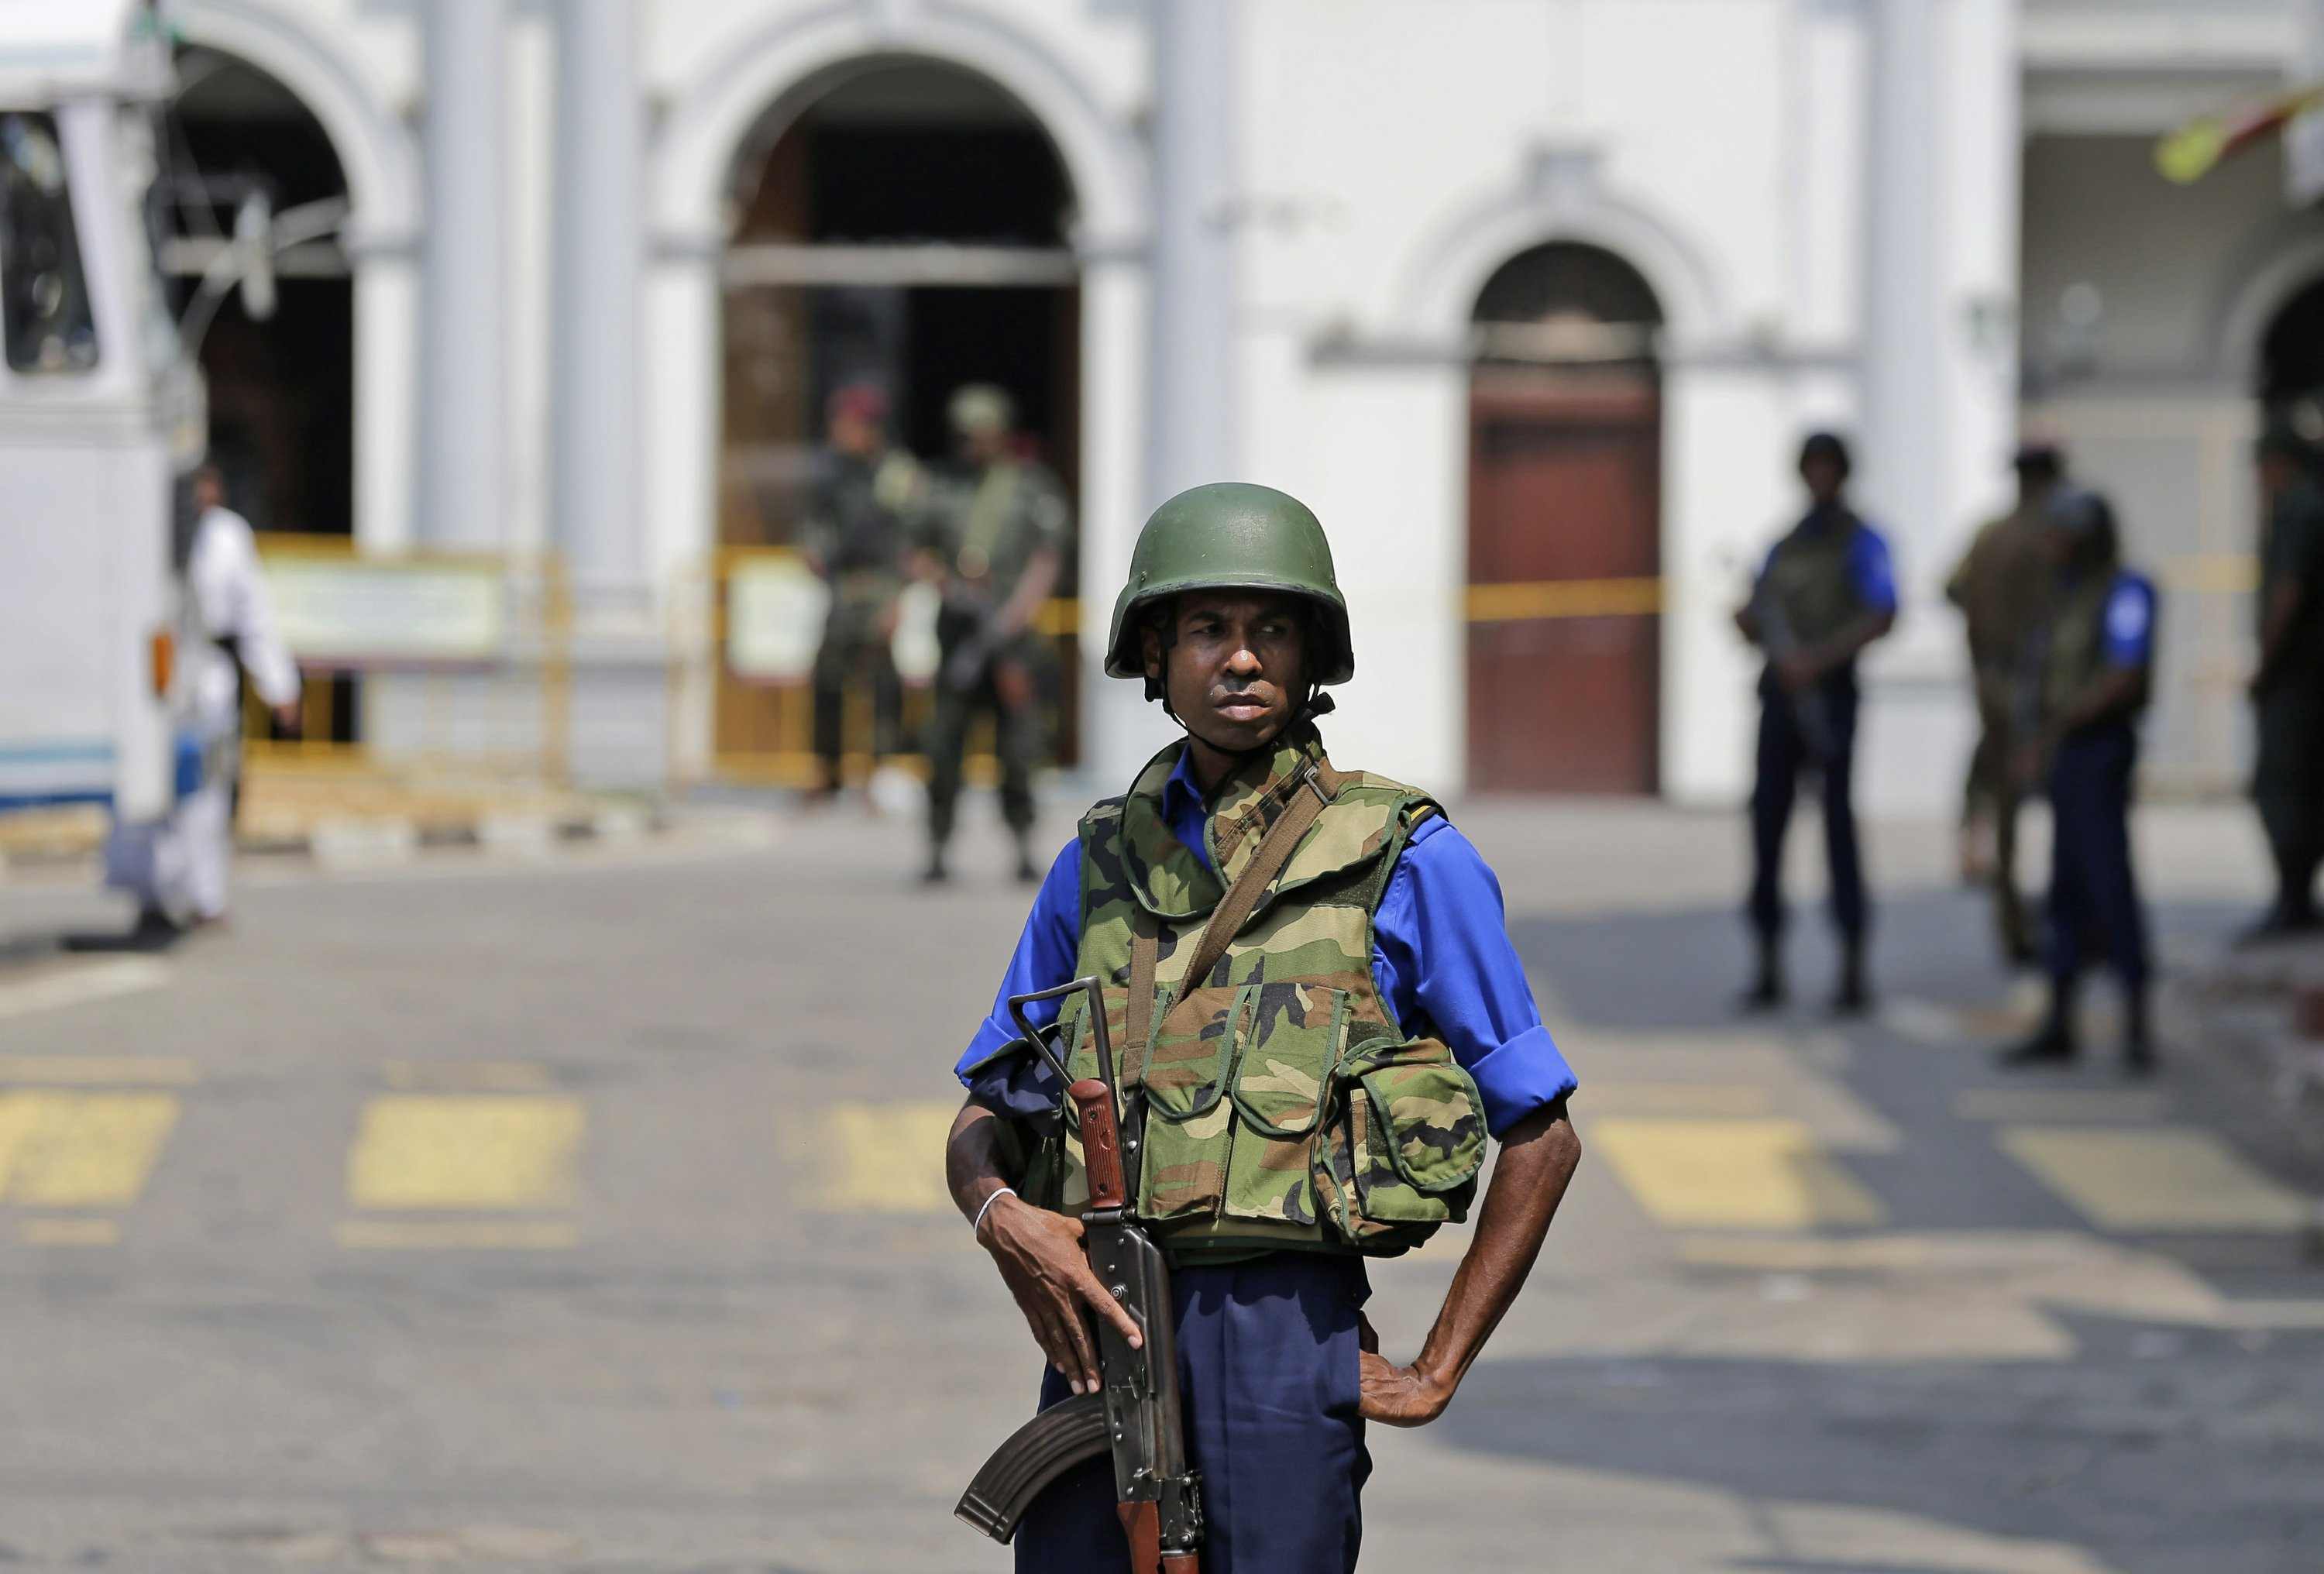 US says to avoid Sri Lanka places of worship, fearing attack